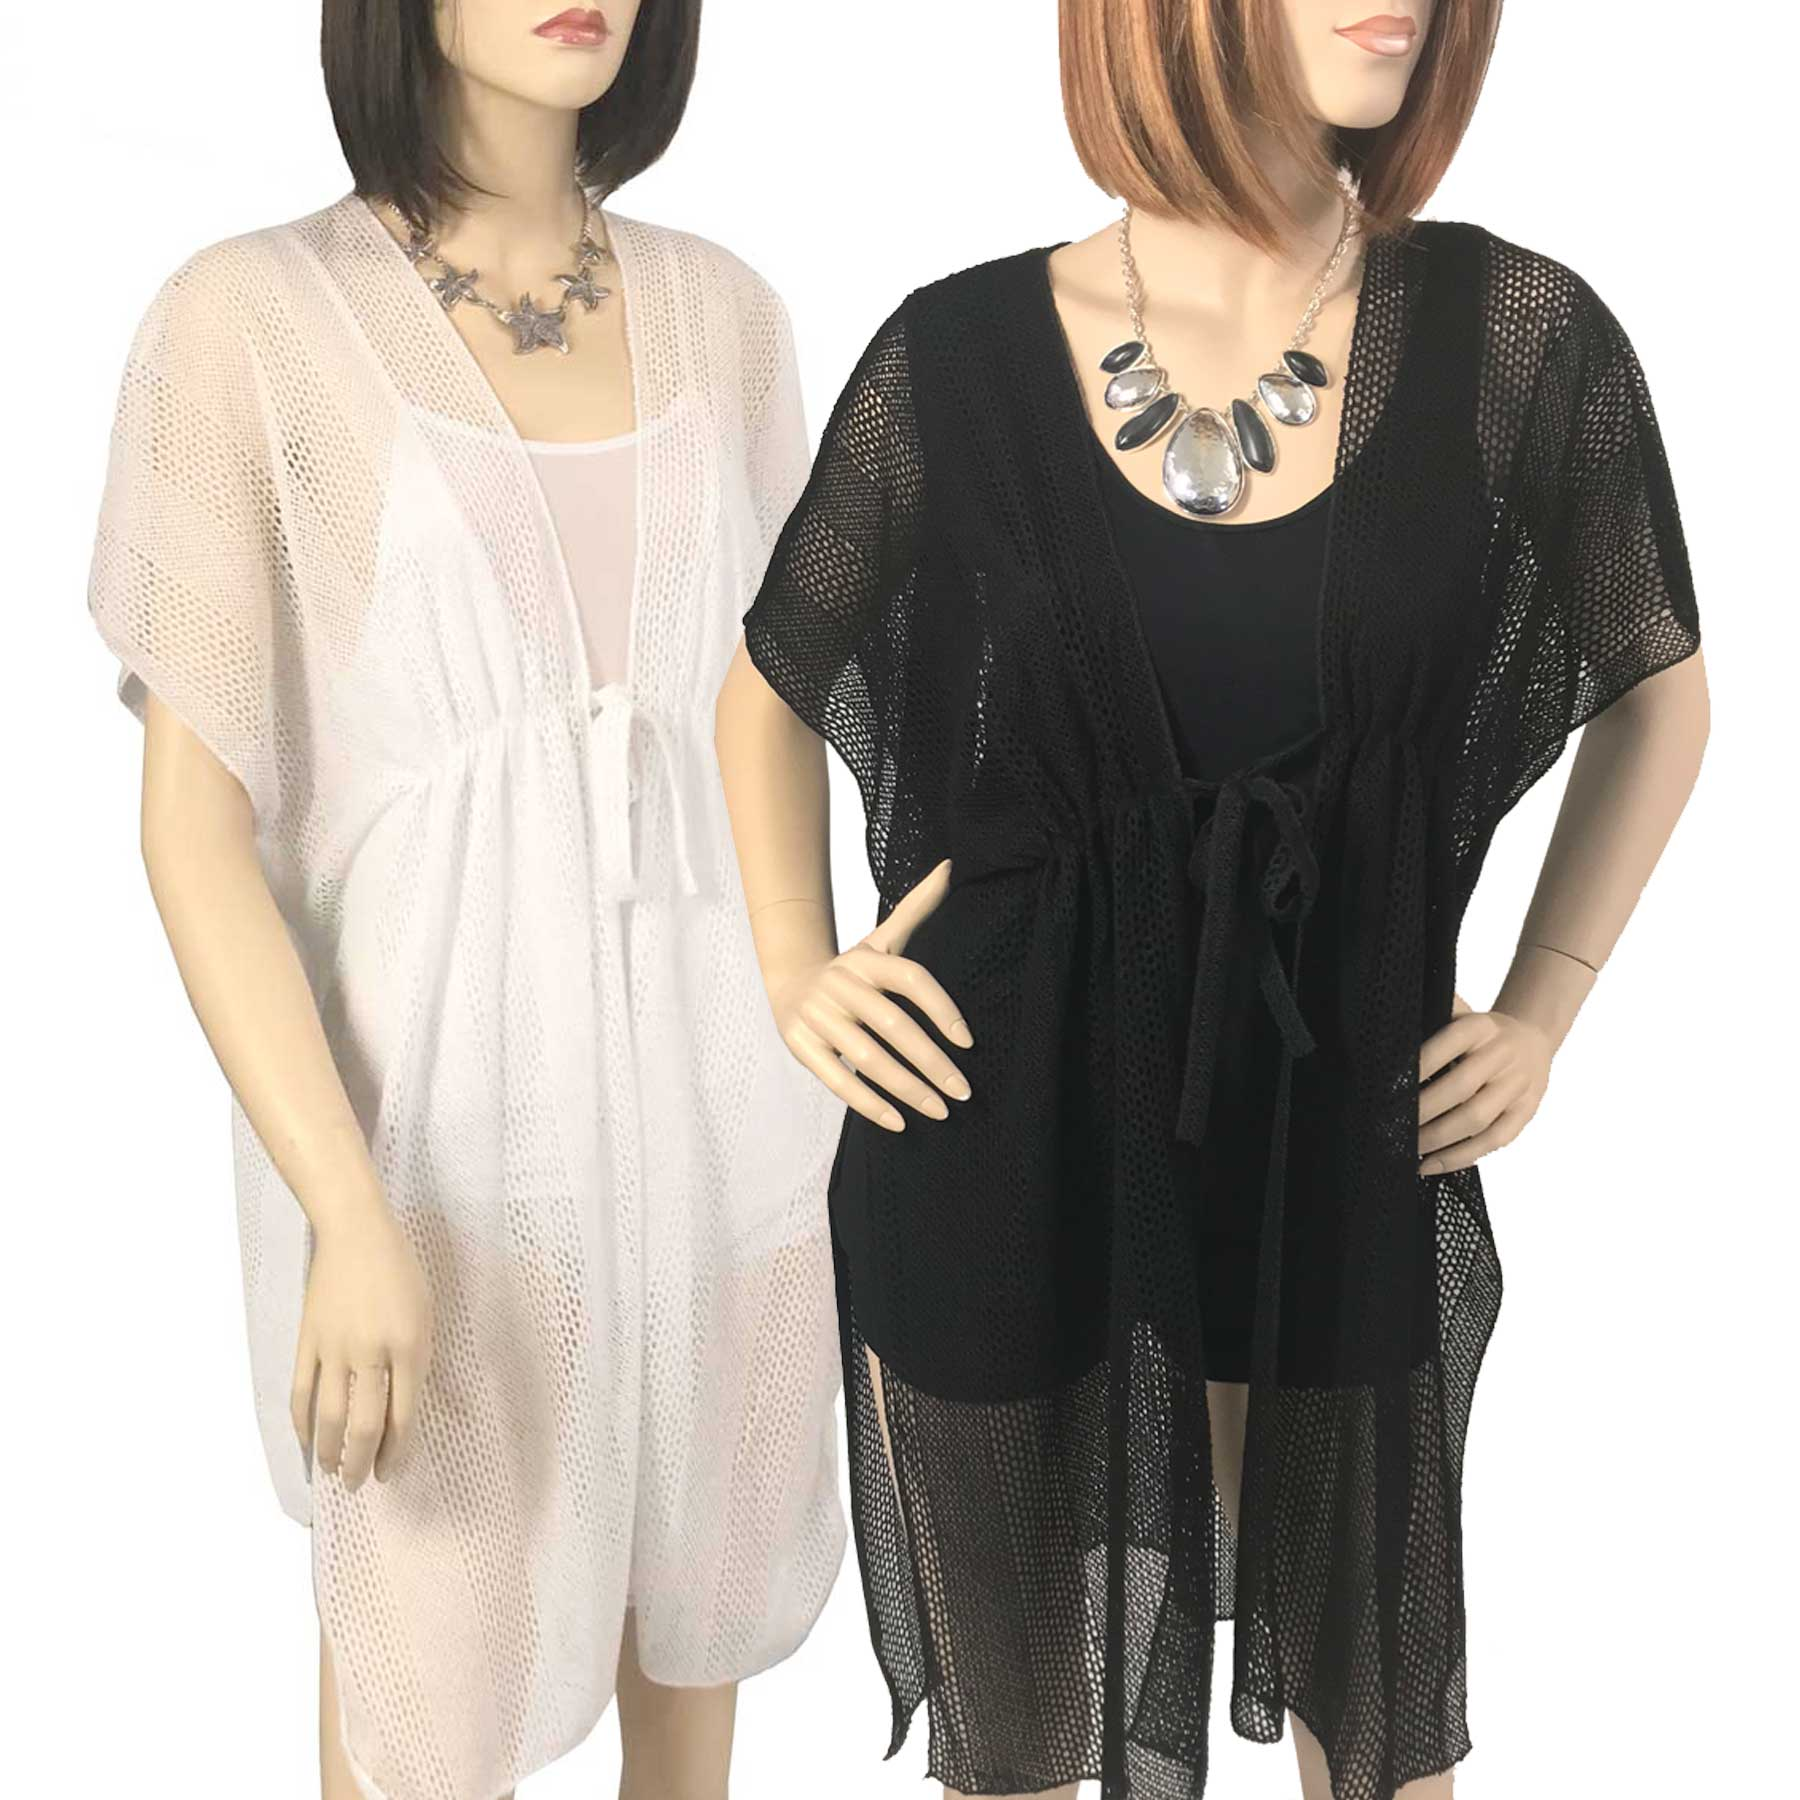 Kimono Style Cover-up - Crochet with Tie 1316